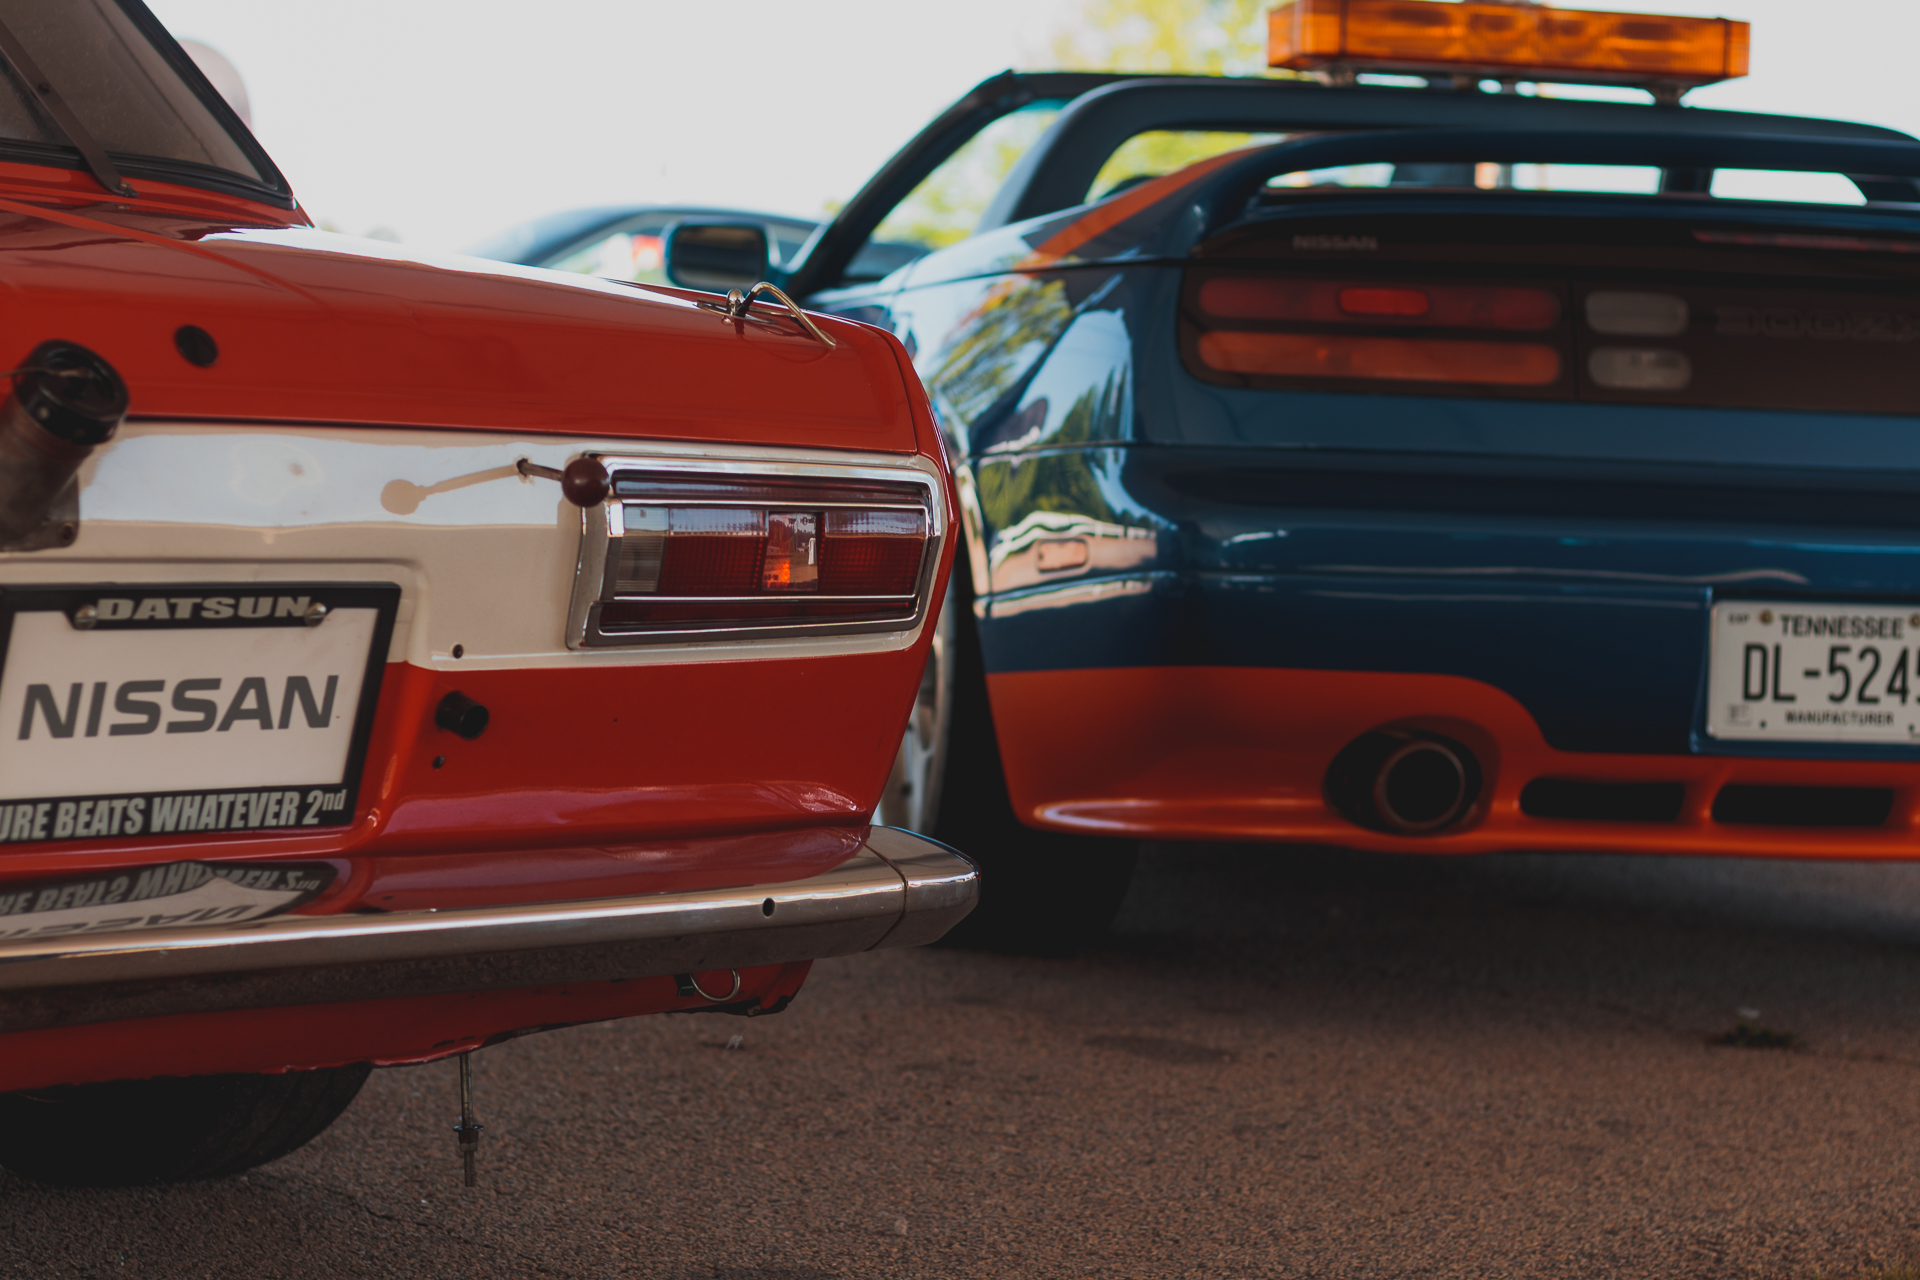 BRE Datsun 510 and a Nissan 300ZX pace car